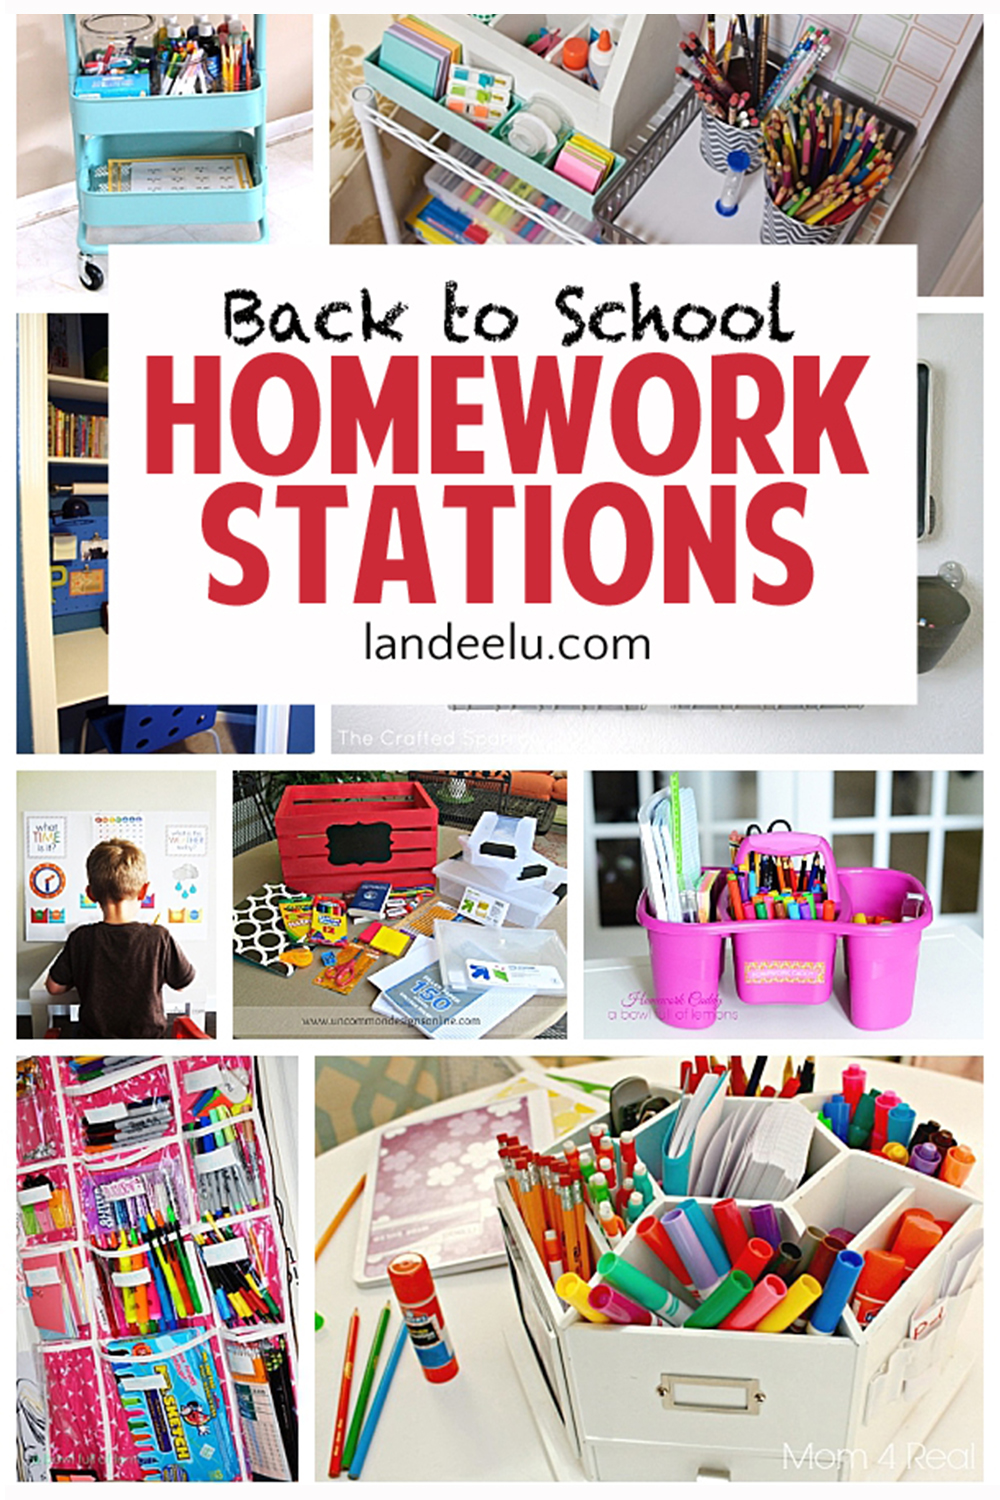 I love these ideas to get the kids motivated to do homework when they head back to school! #homeworkstations #diyhomeworkstations #backtoschool #homework